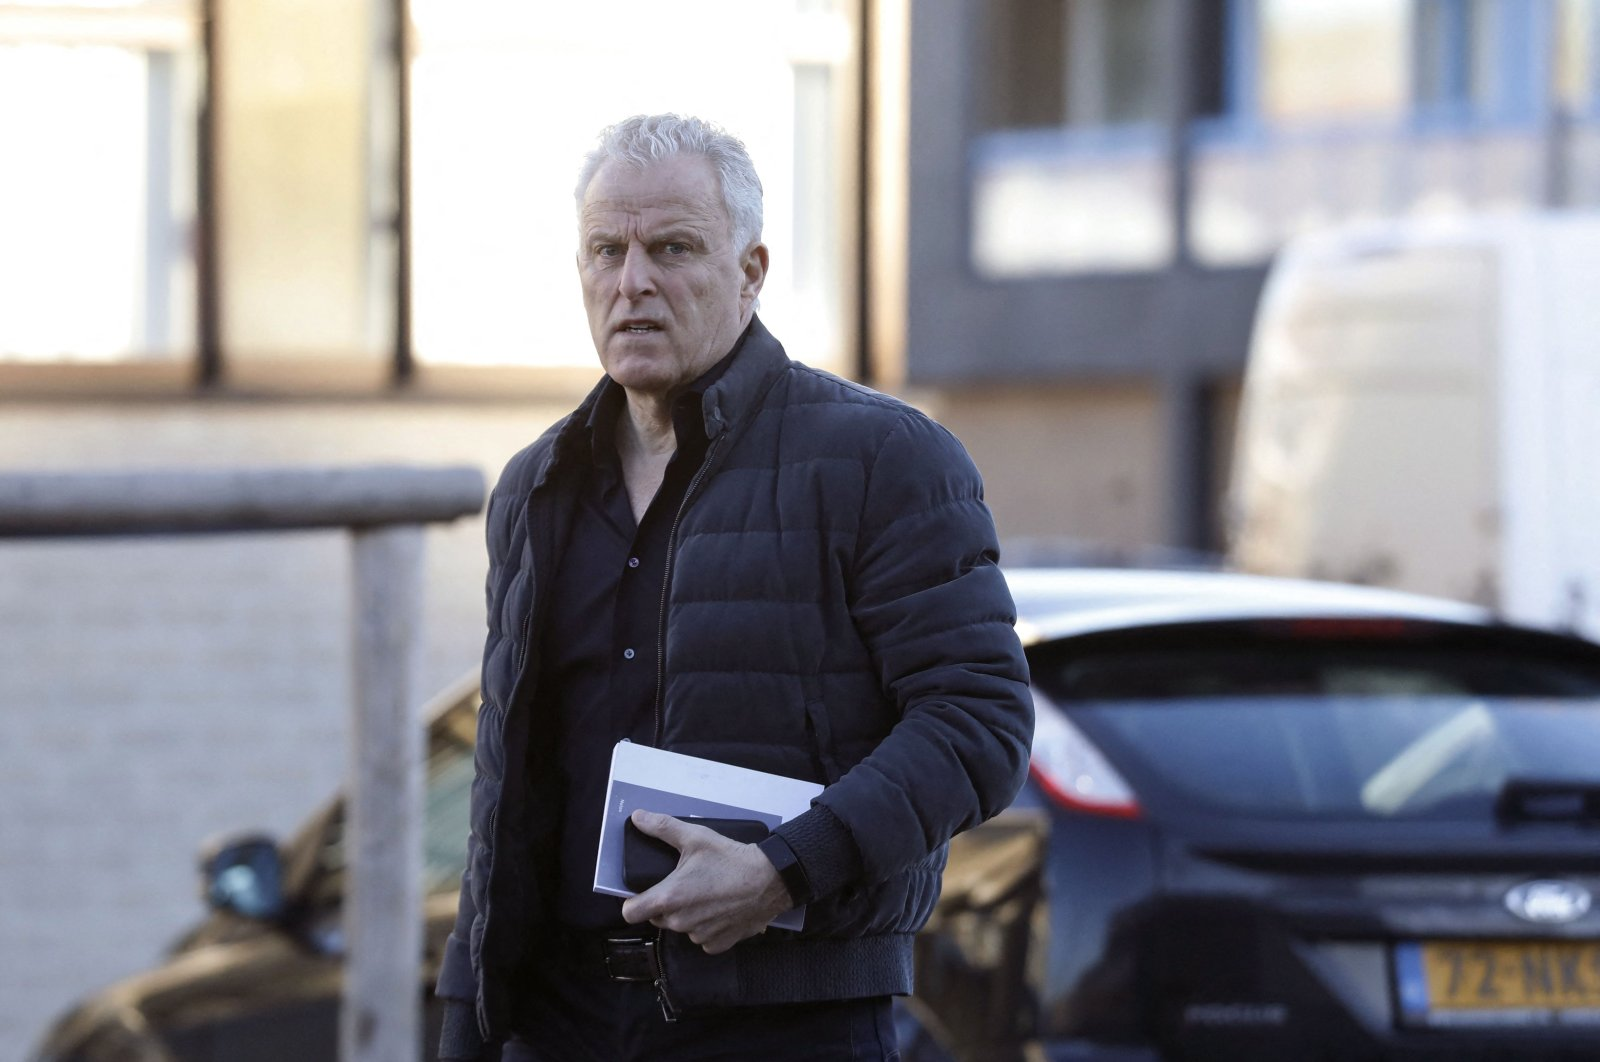 Dutch crime reporter Peter R. de Vries arrives at the heavily secured courtroom in Amsterdam, the Netherlands, Feb. 15, 2019. (AFP Photo)